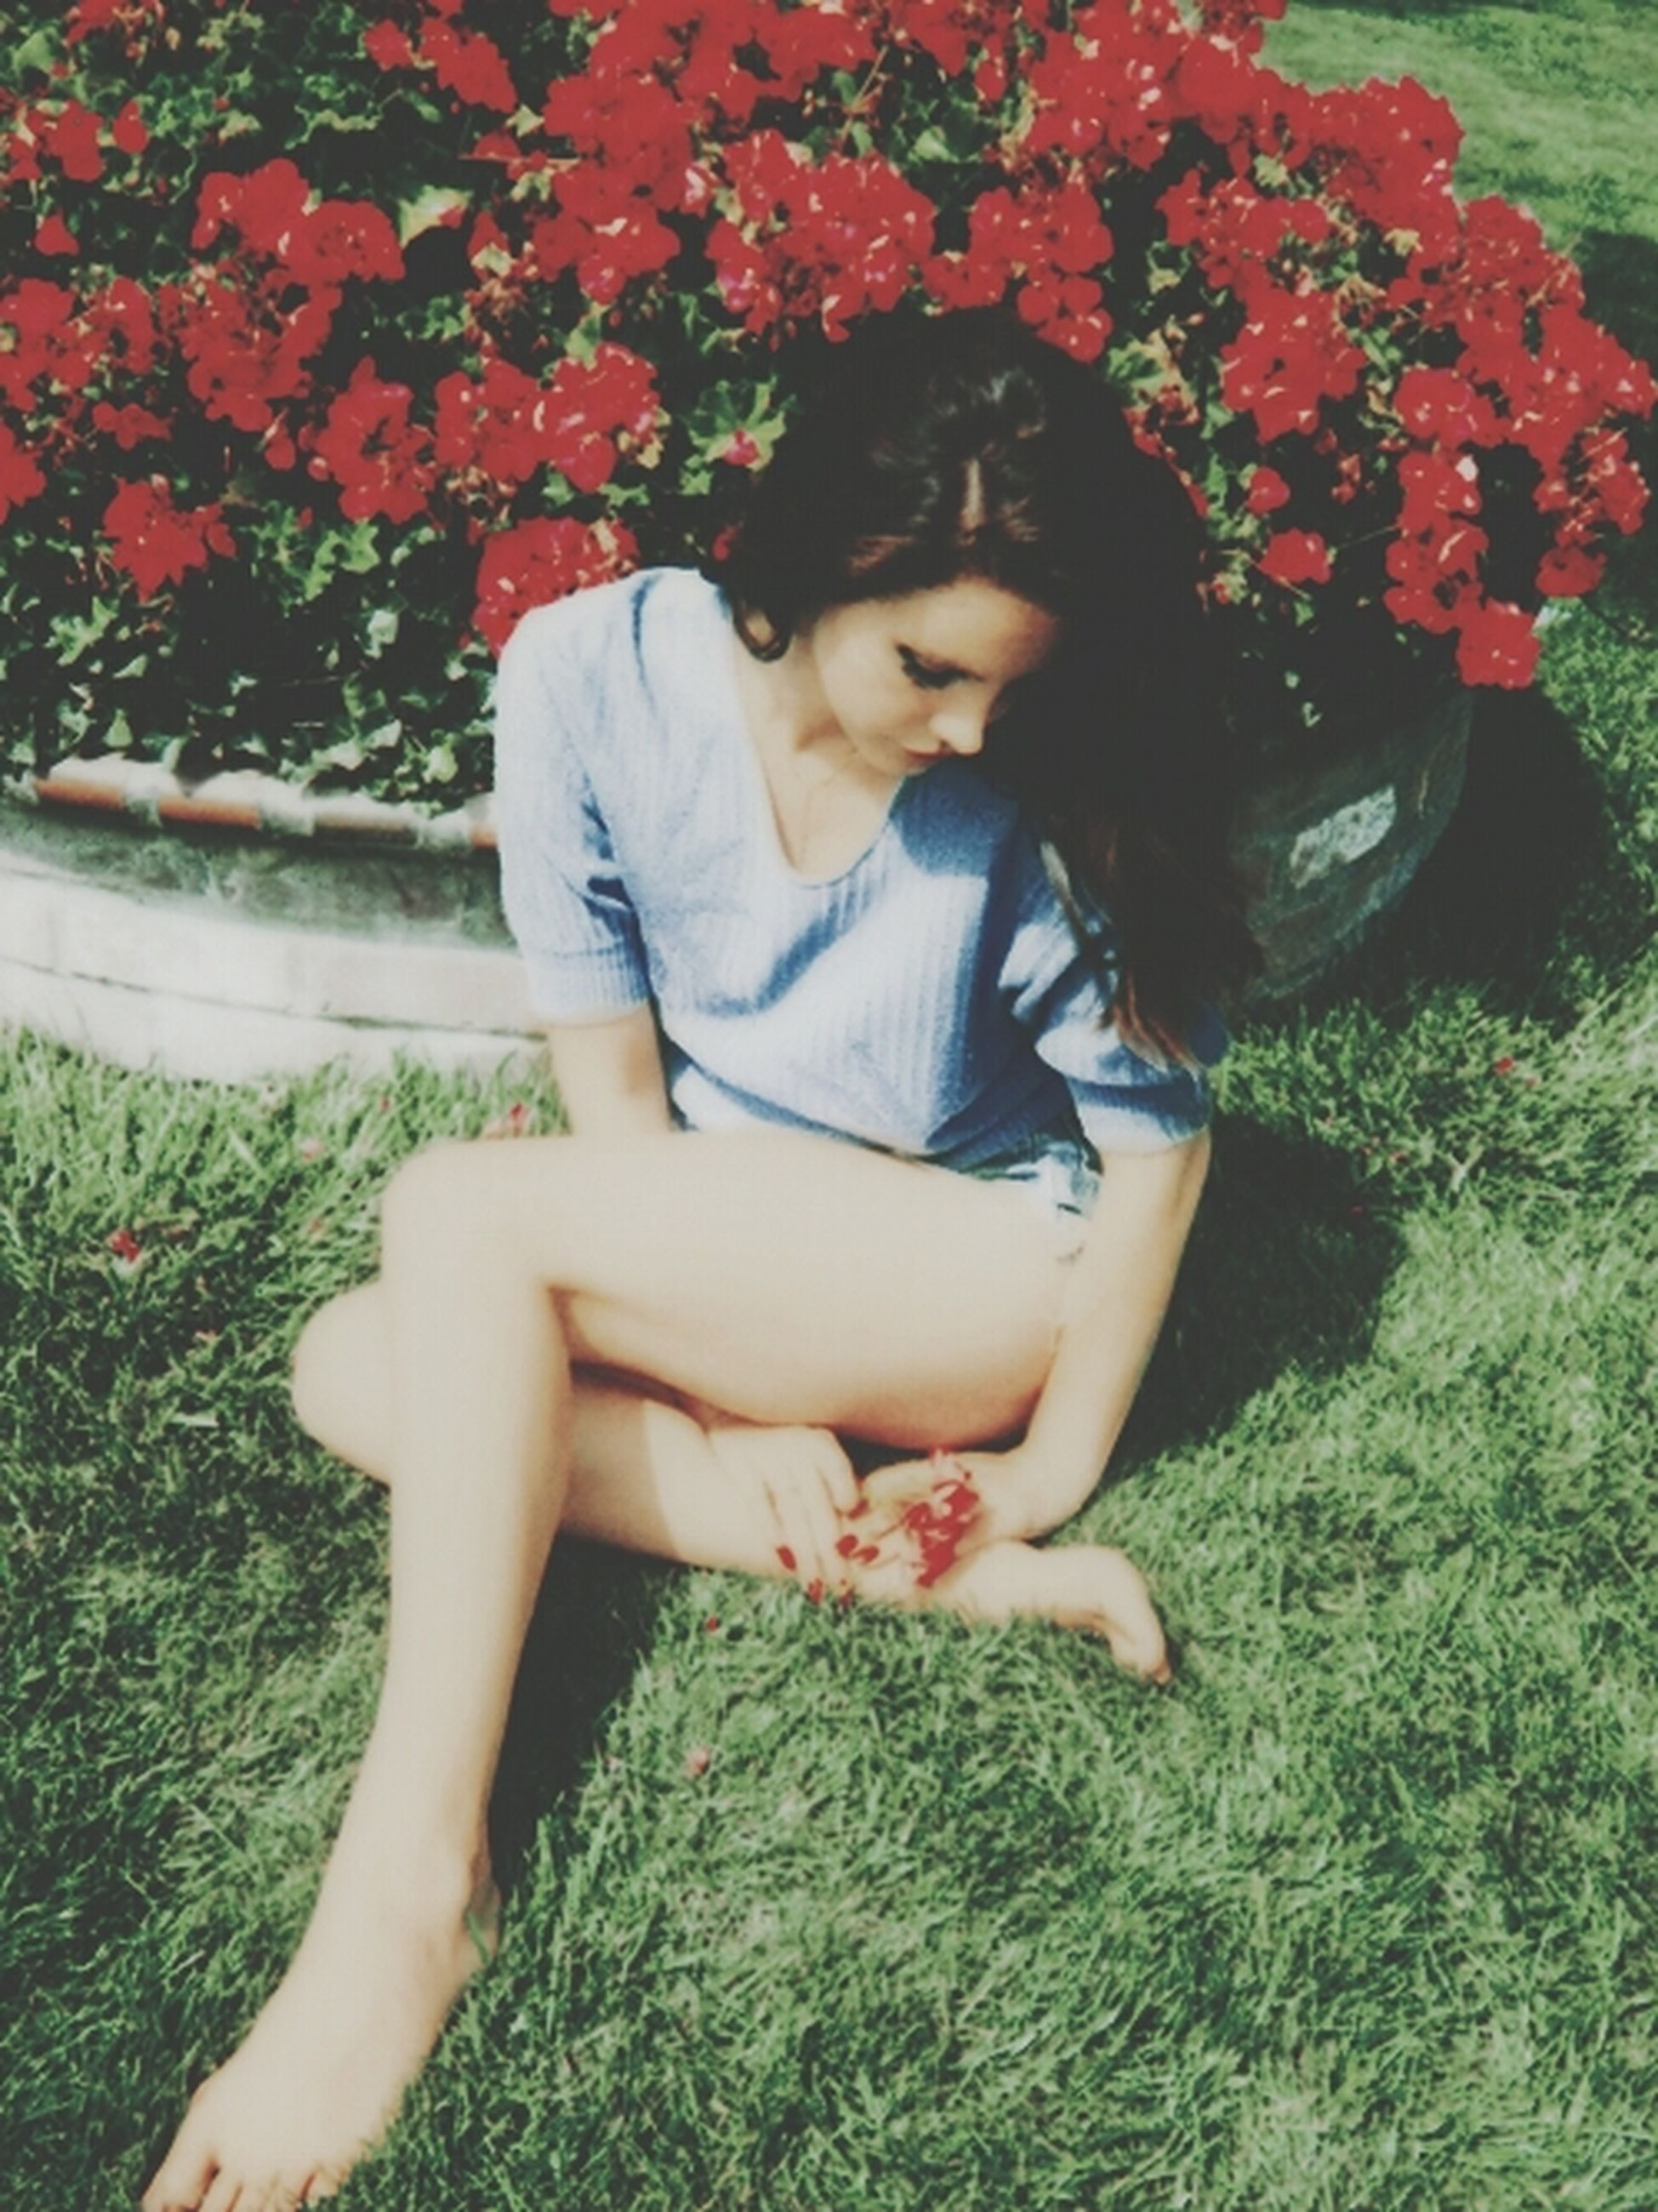 young adult, person, lifestyles, young women, leisure activity, casual clothing, looking at camera, smiling, sitting, flower, portrait, grass, front view, three quarter length, park - man made space, full length, happiness